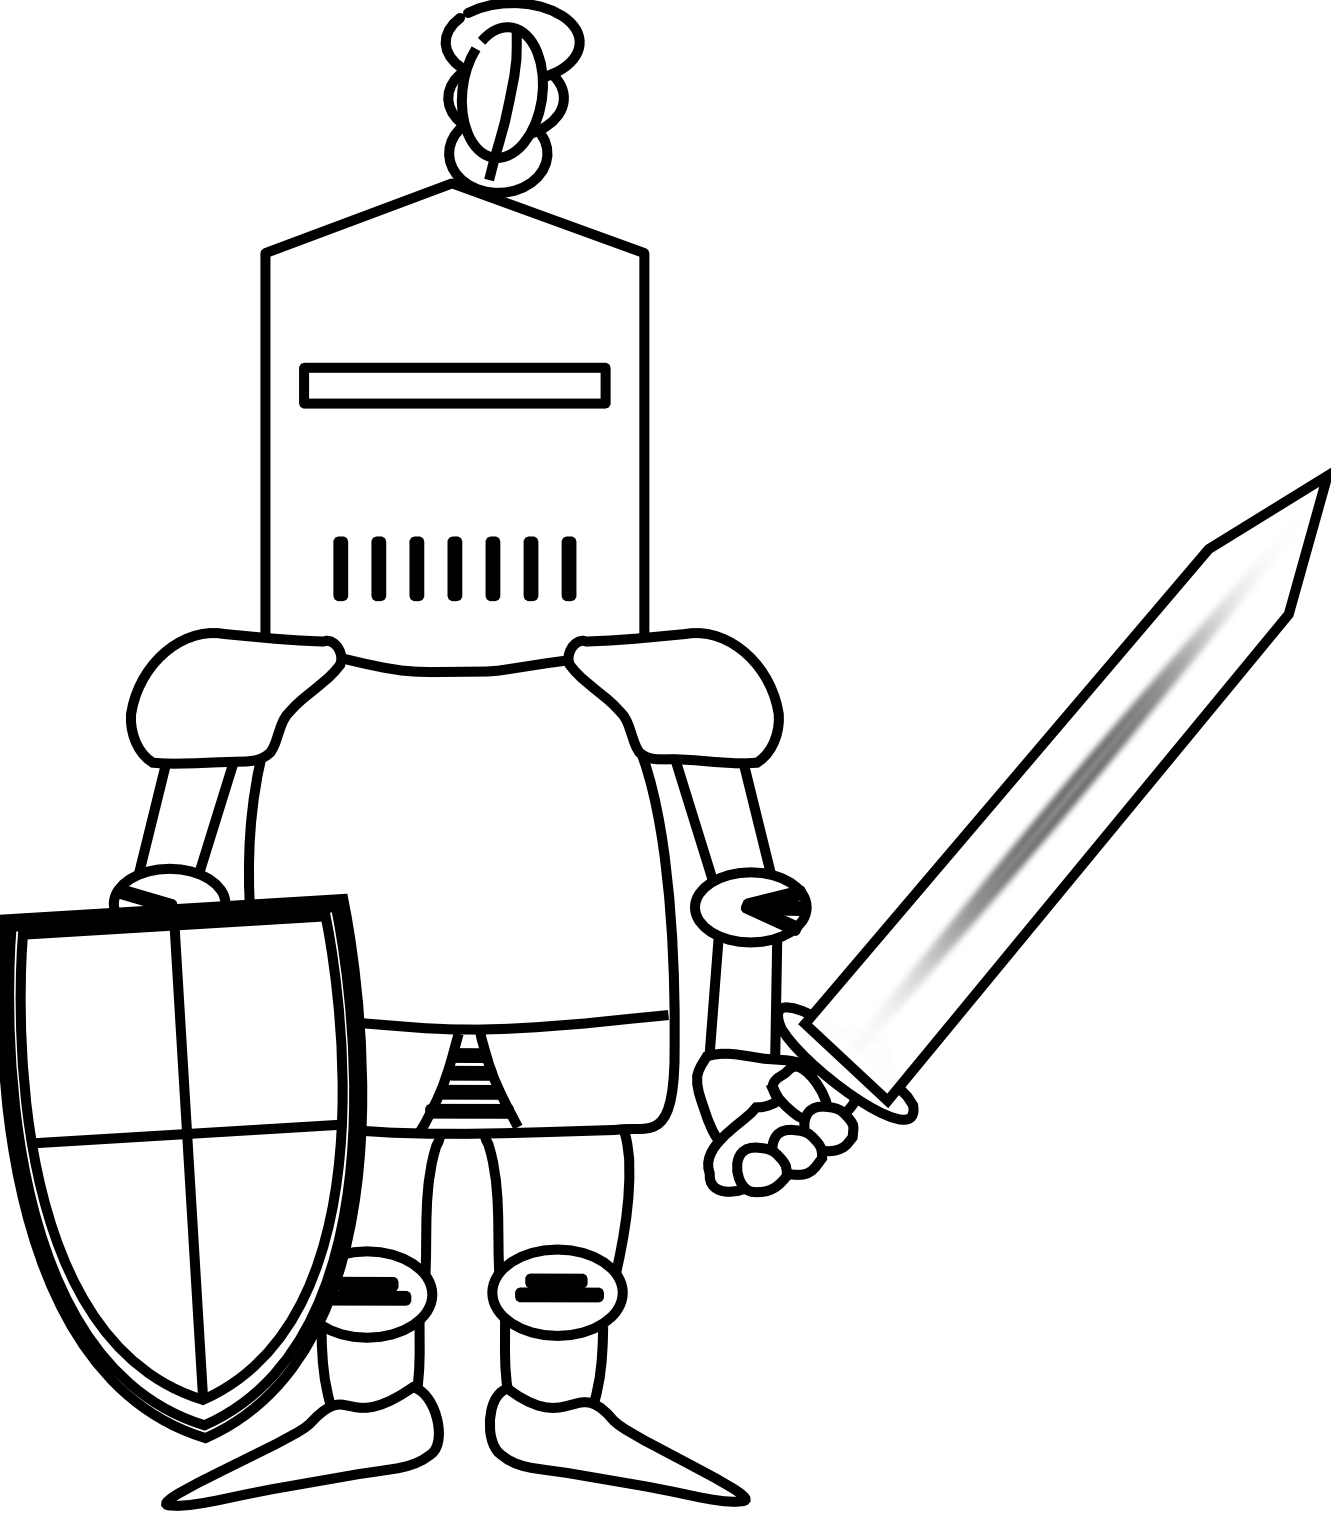 Knight Clip Art In Vector Or Eps Format Free.